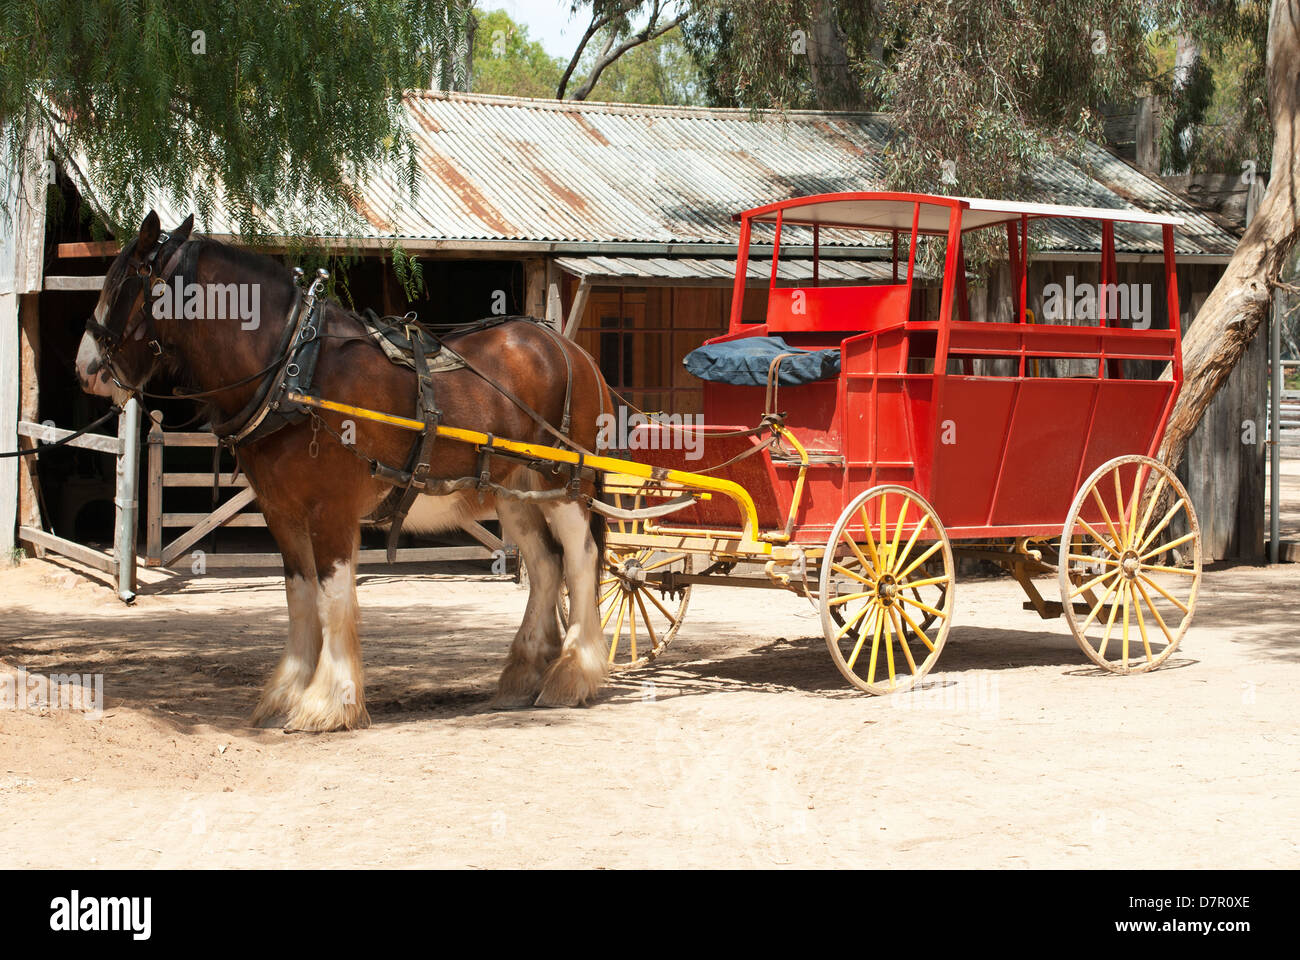 A Stage Coach and Clydesdale Draught Horse - Stock Image